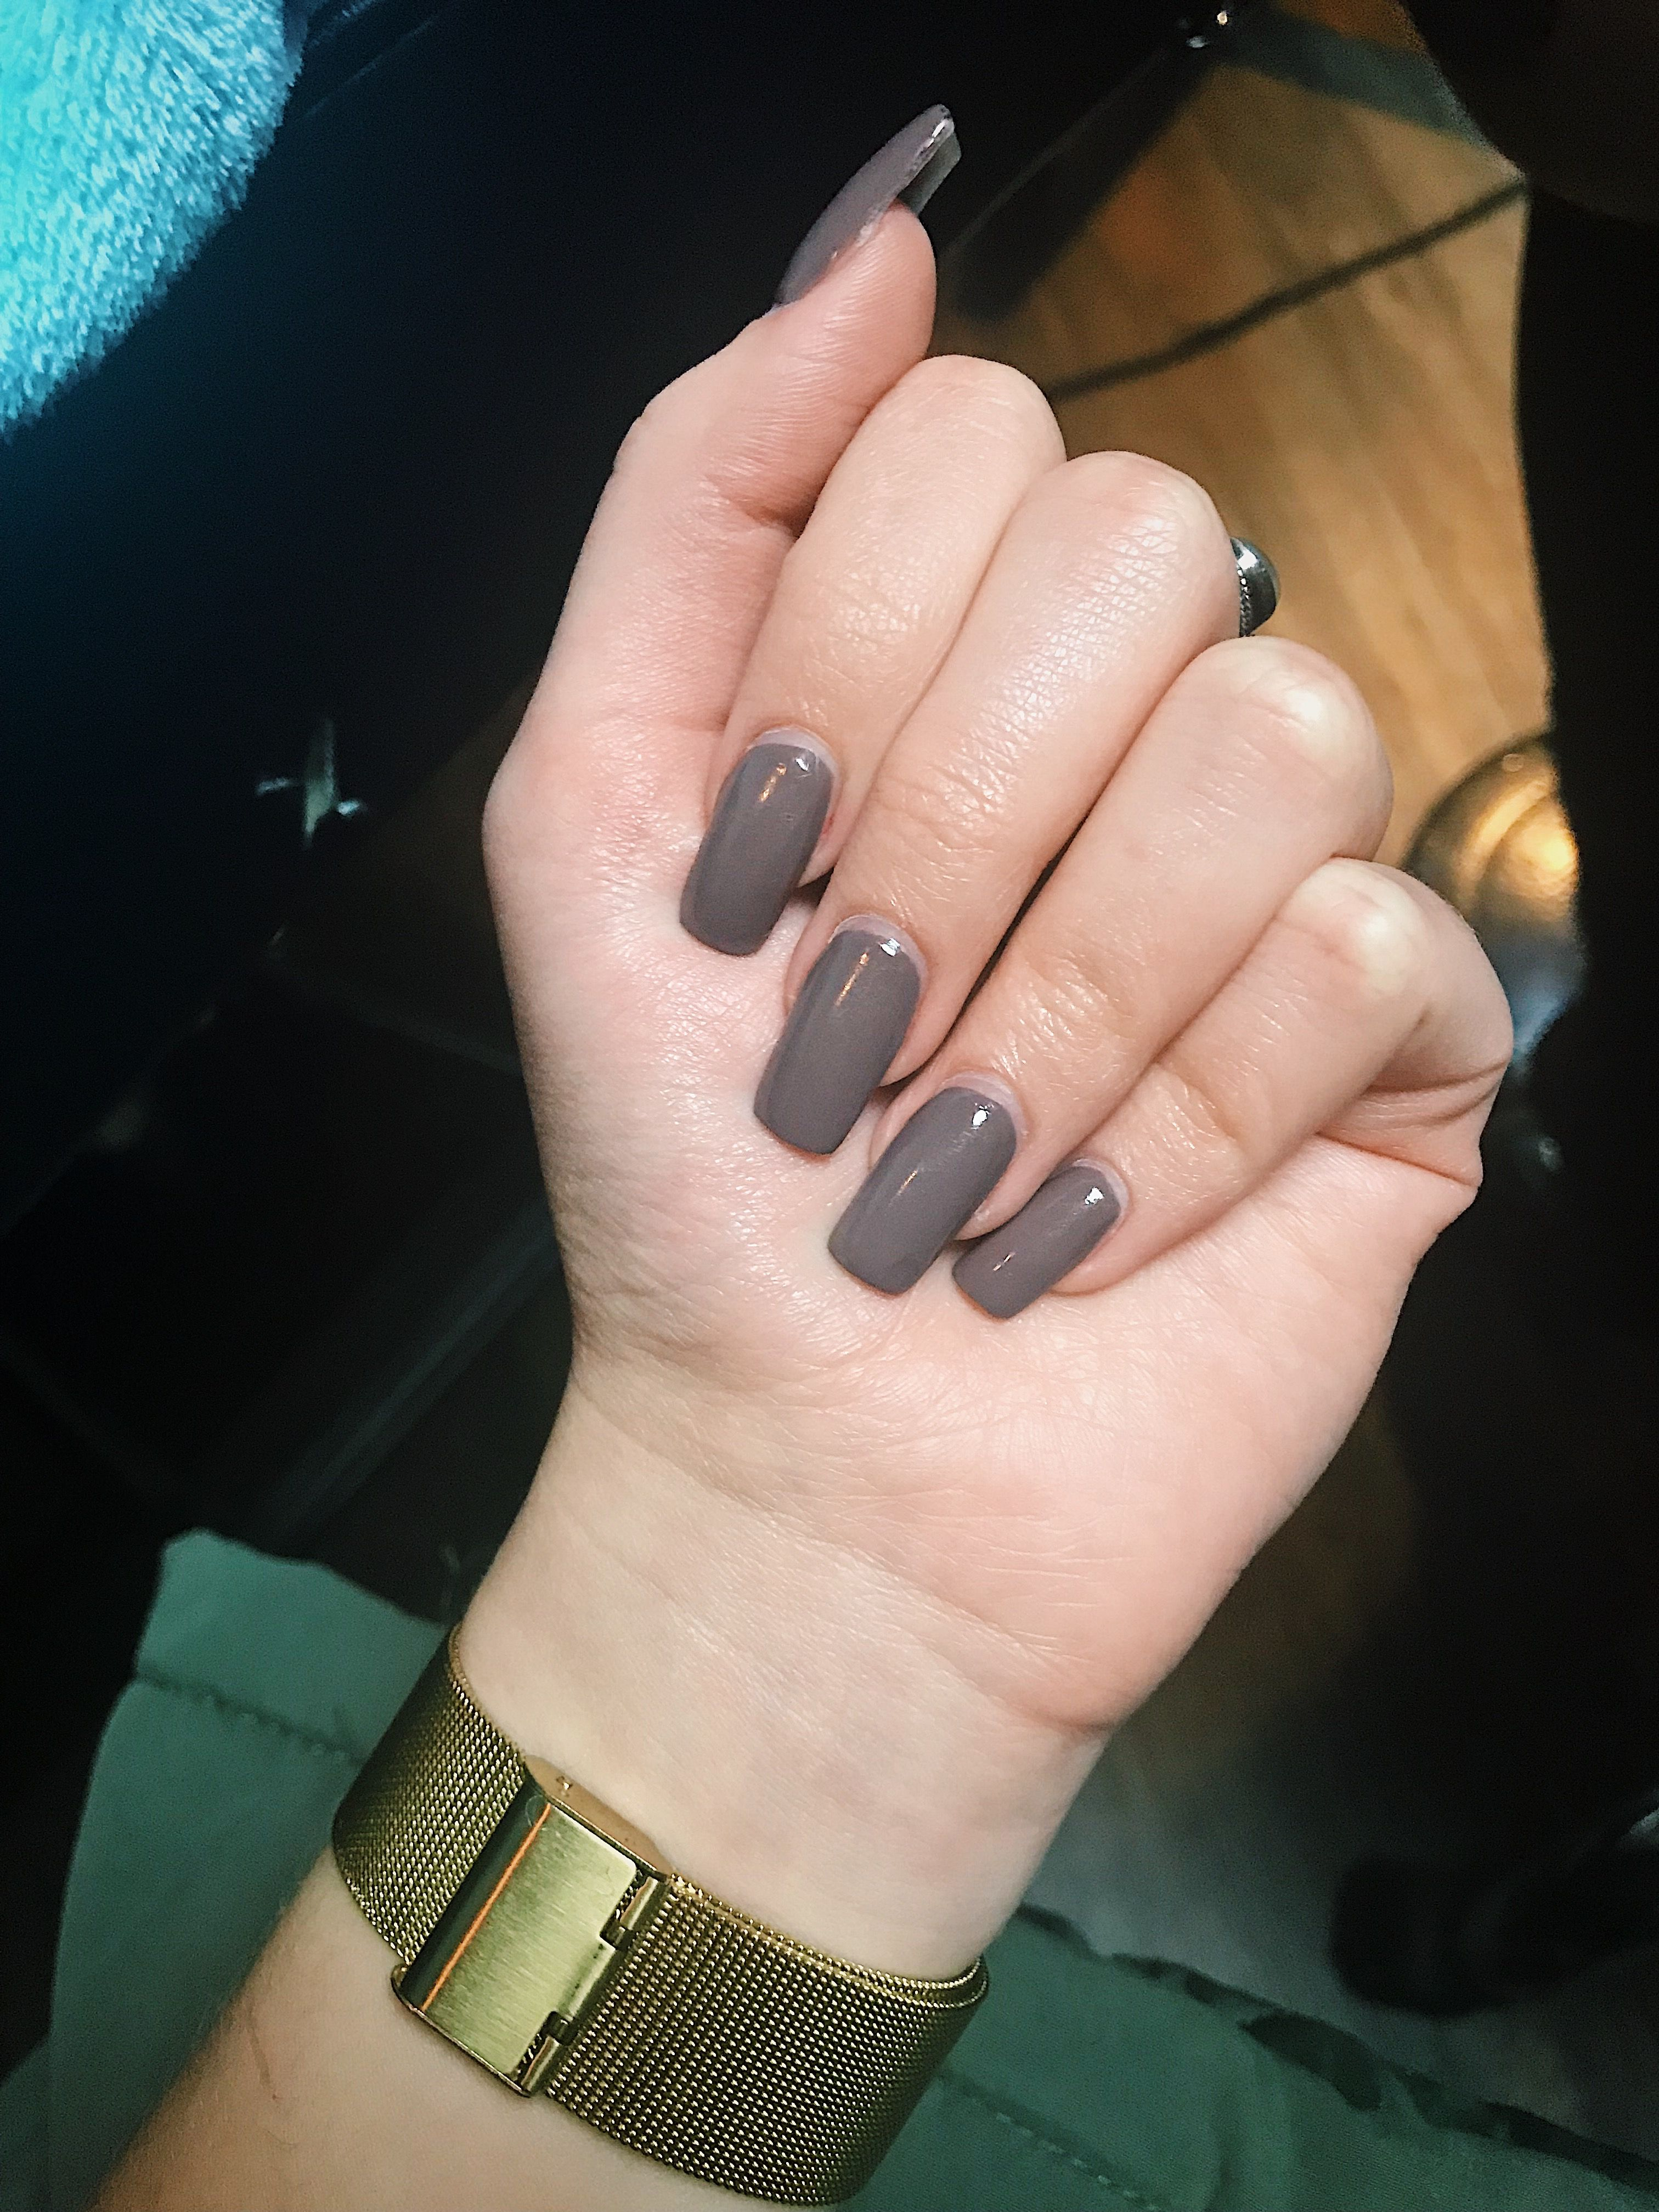 Grey Brown Squoval Acrylic Square Acrylic Nails Squoval Nails Grey Acrylic Nails